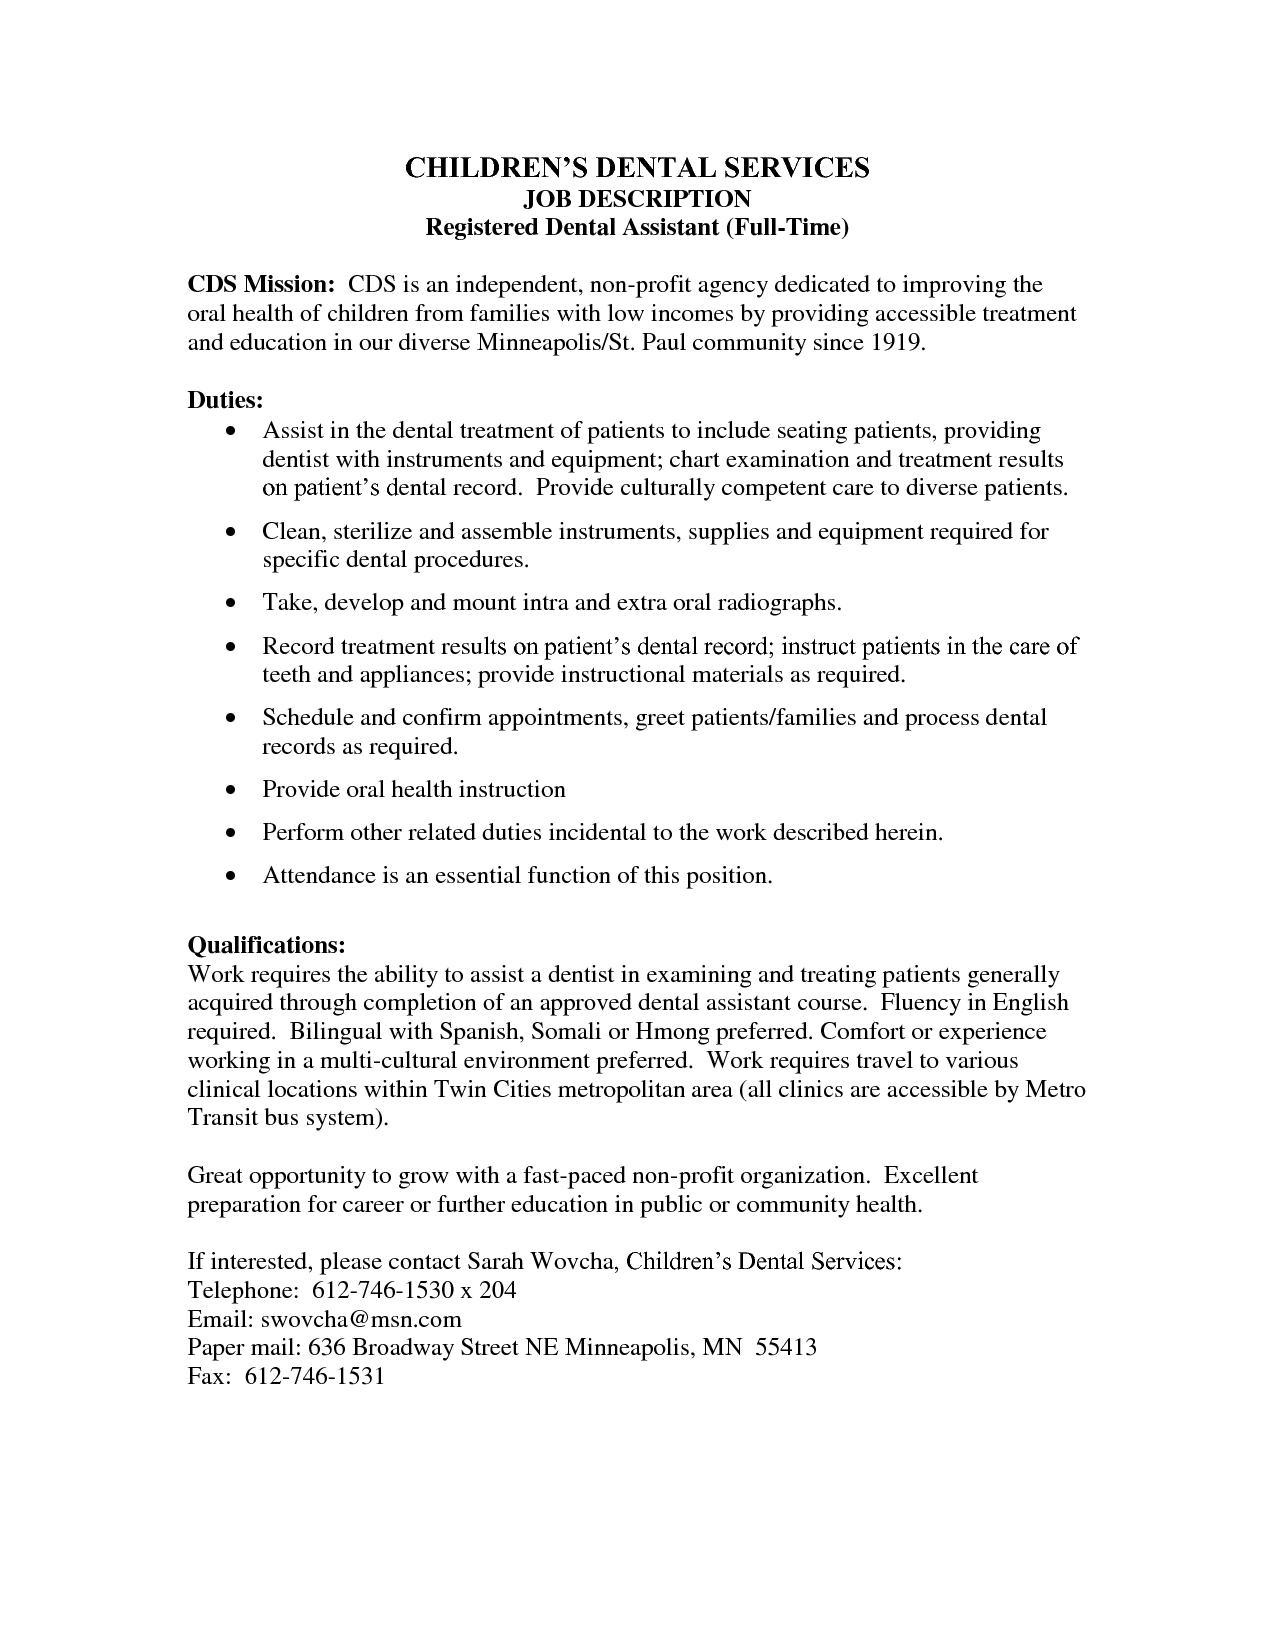 Dental Assistant Skills and Qualifications Registered Dental ...